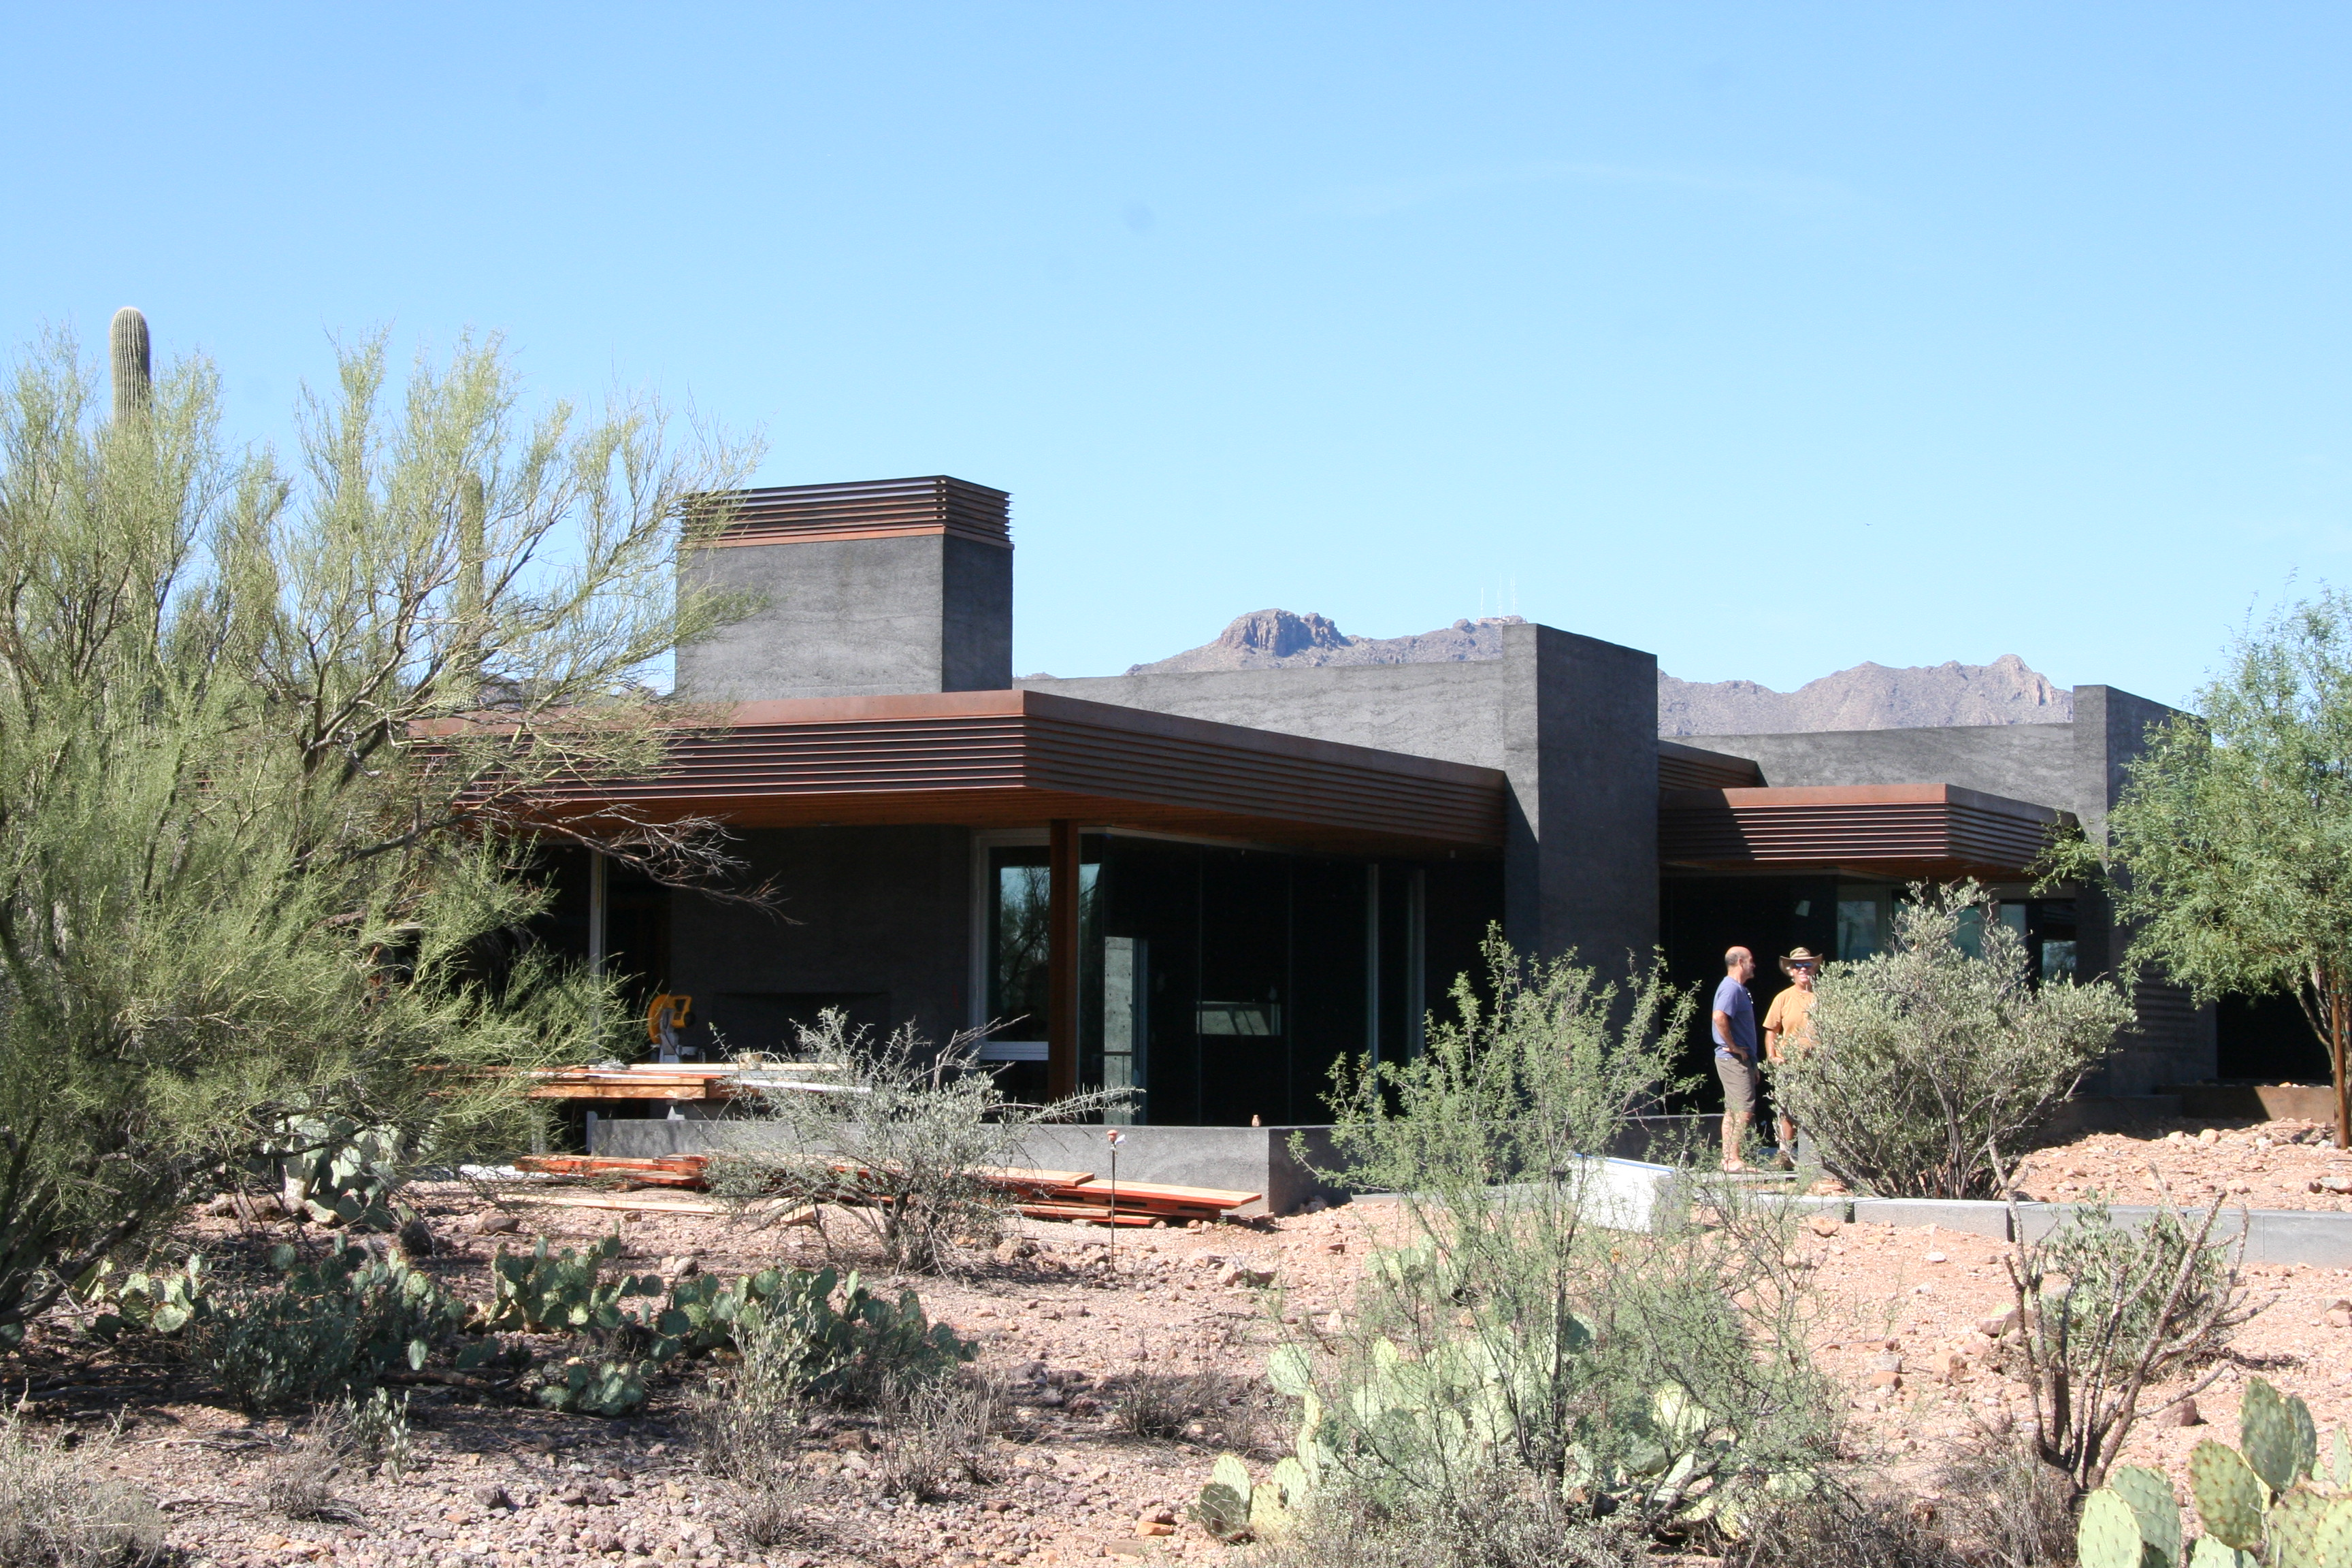 Explore Modern Homes In Tucson January 19